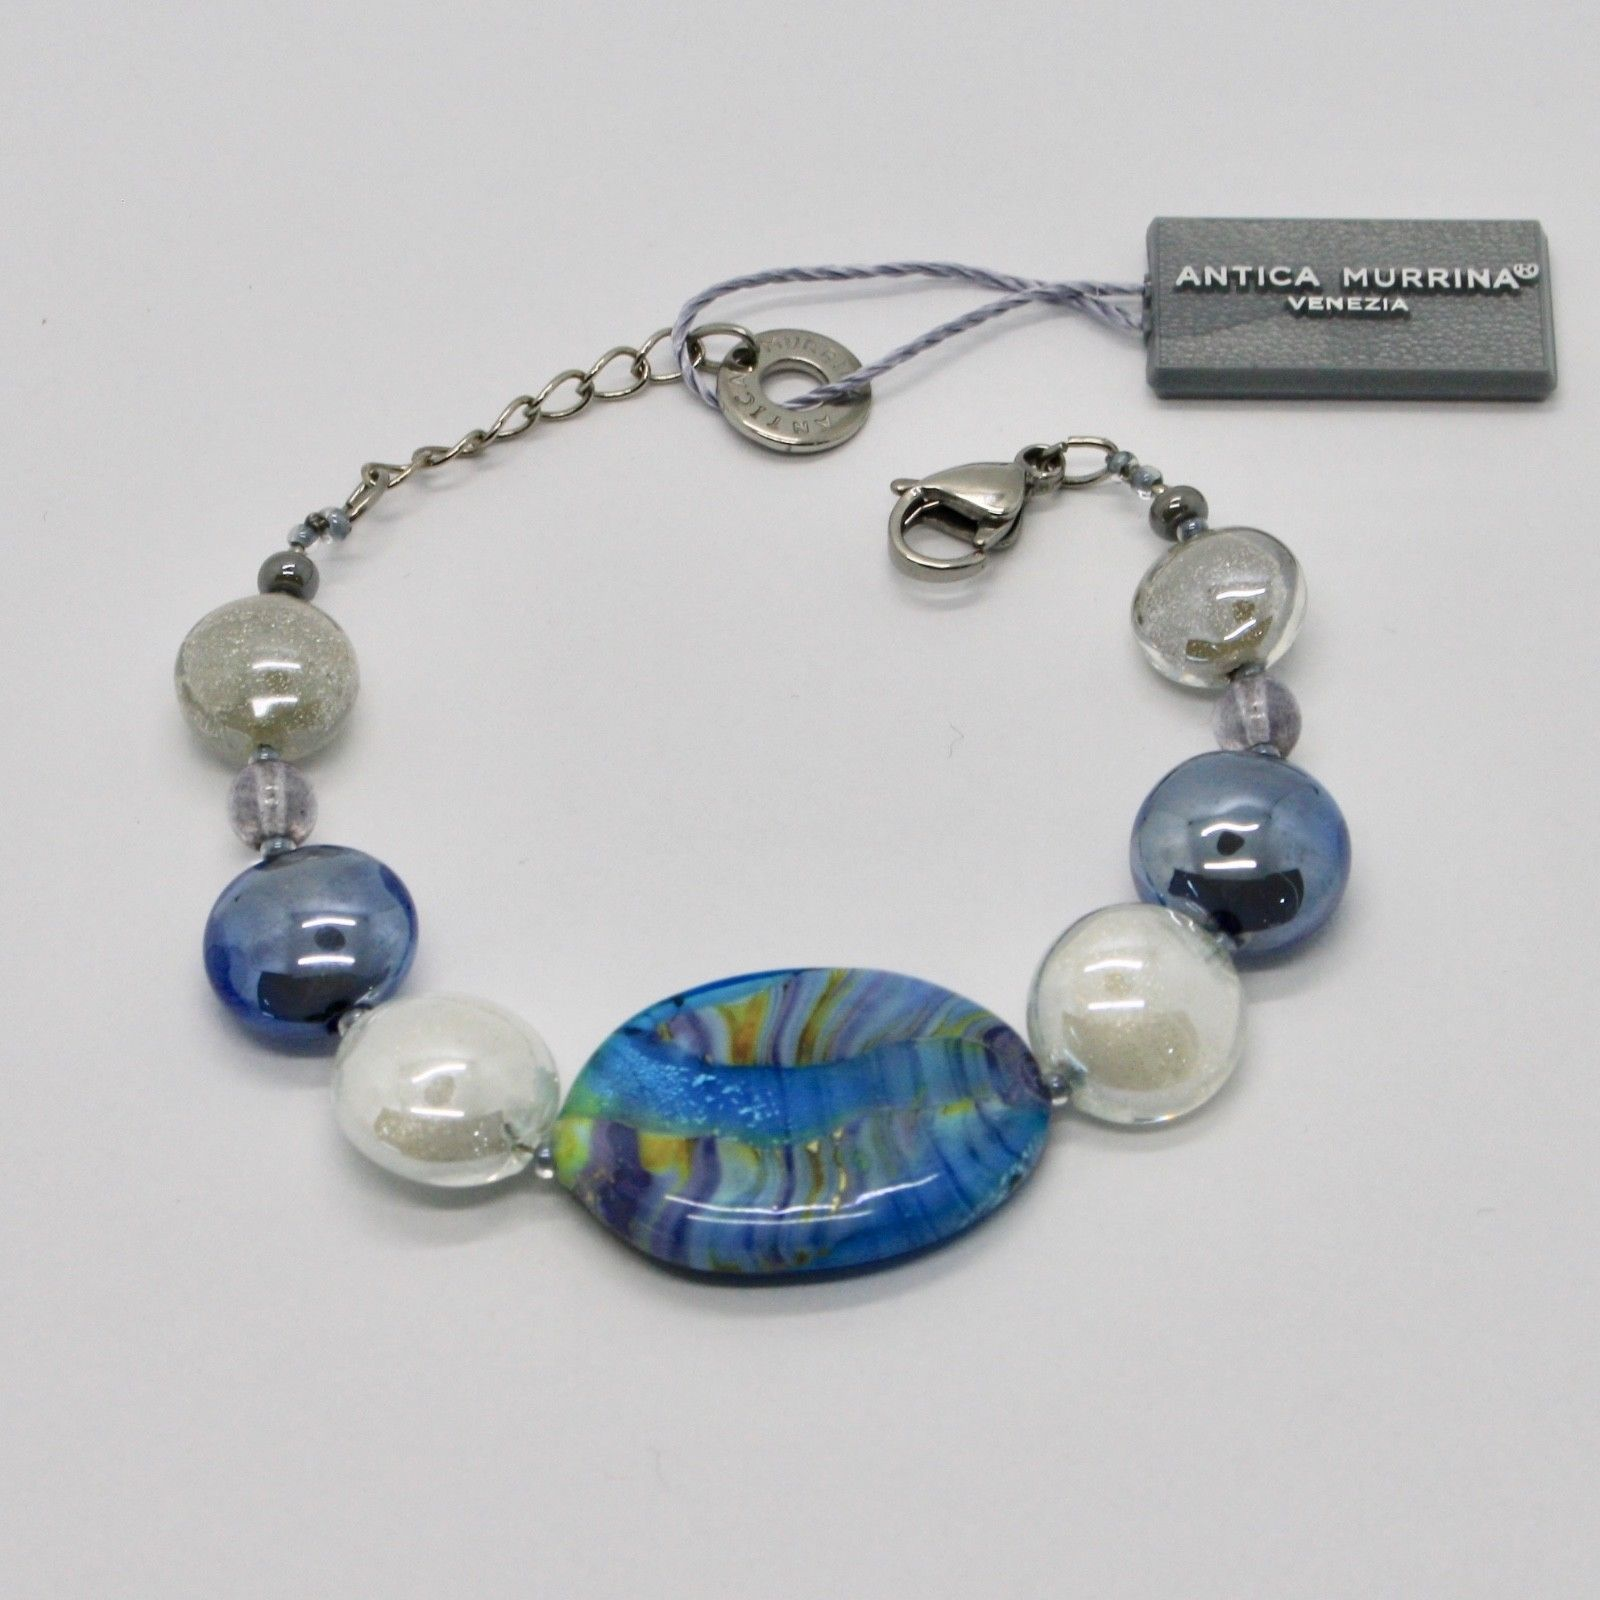 BRACELET ANTICA MURRINA VENEZIA WITH MURANO GLASS BLUE WHITE GREY BR794A07